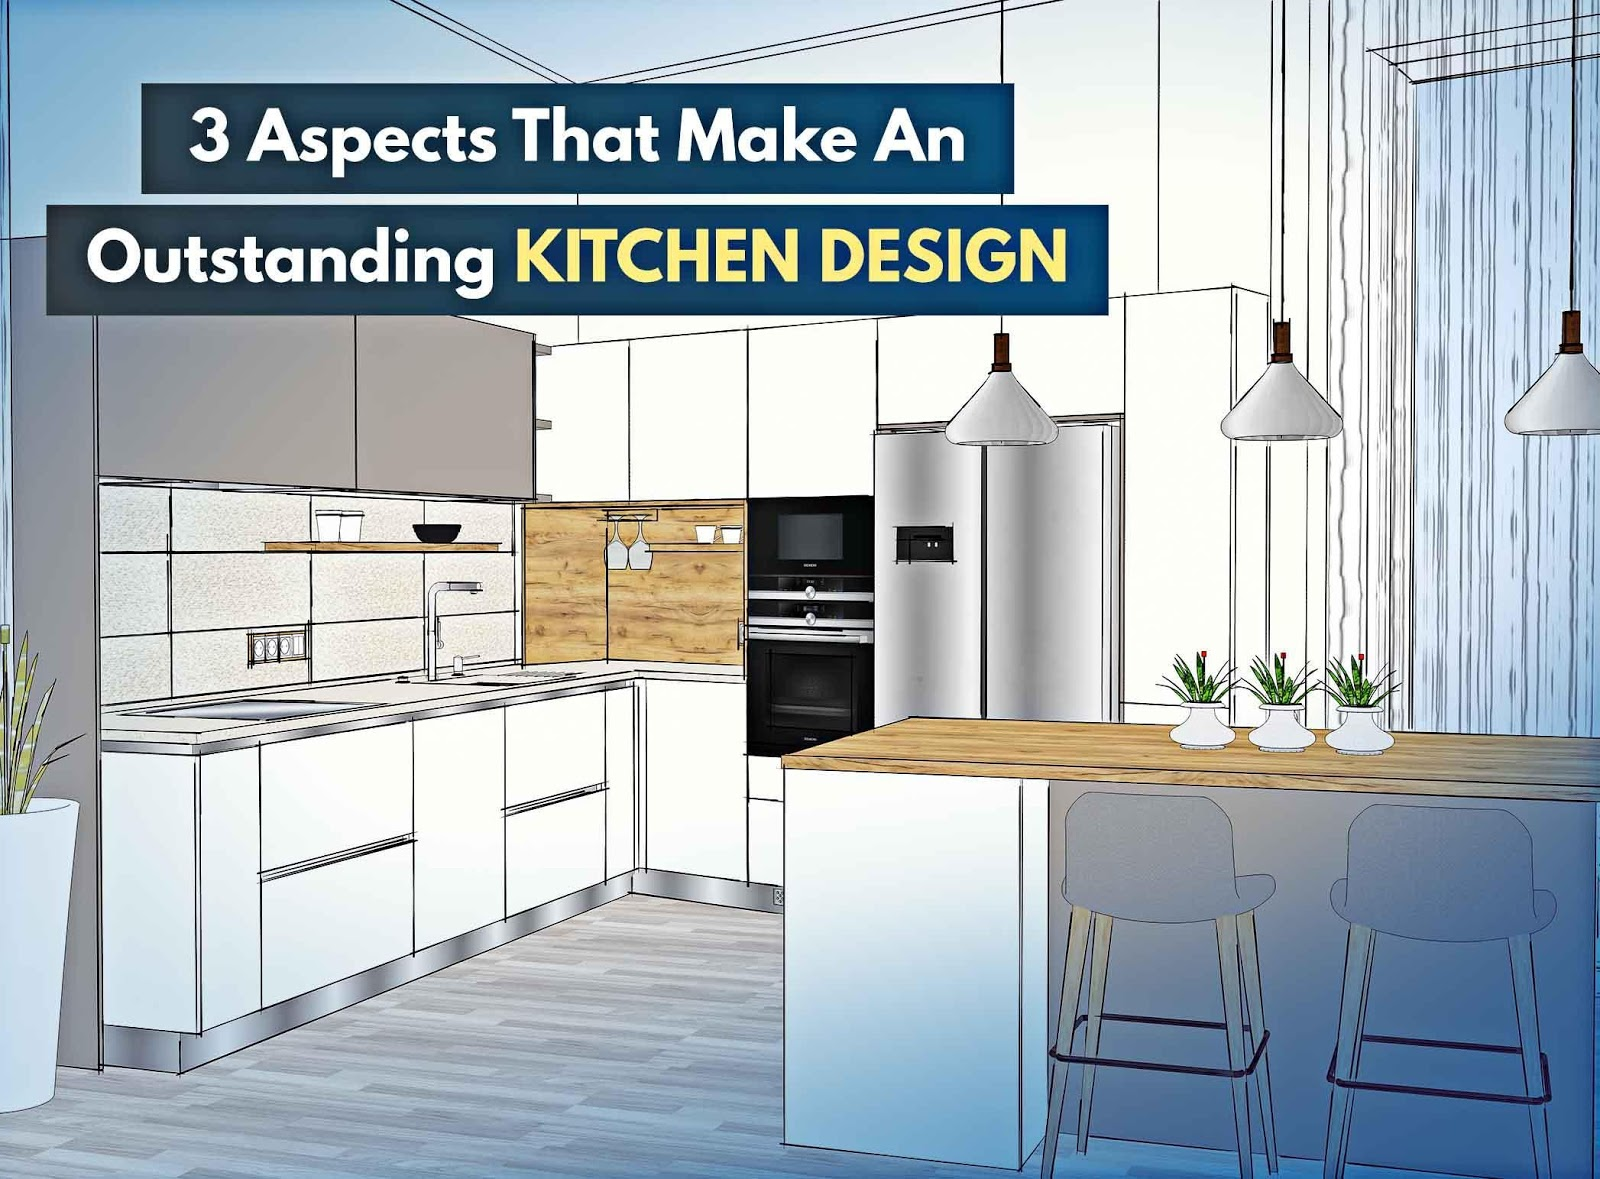 3 Aspects That Make an Outstanding Kitchen Design